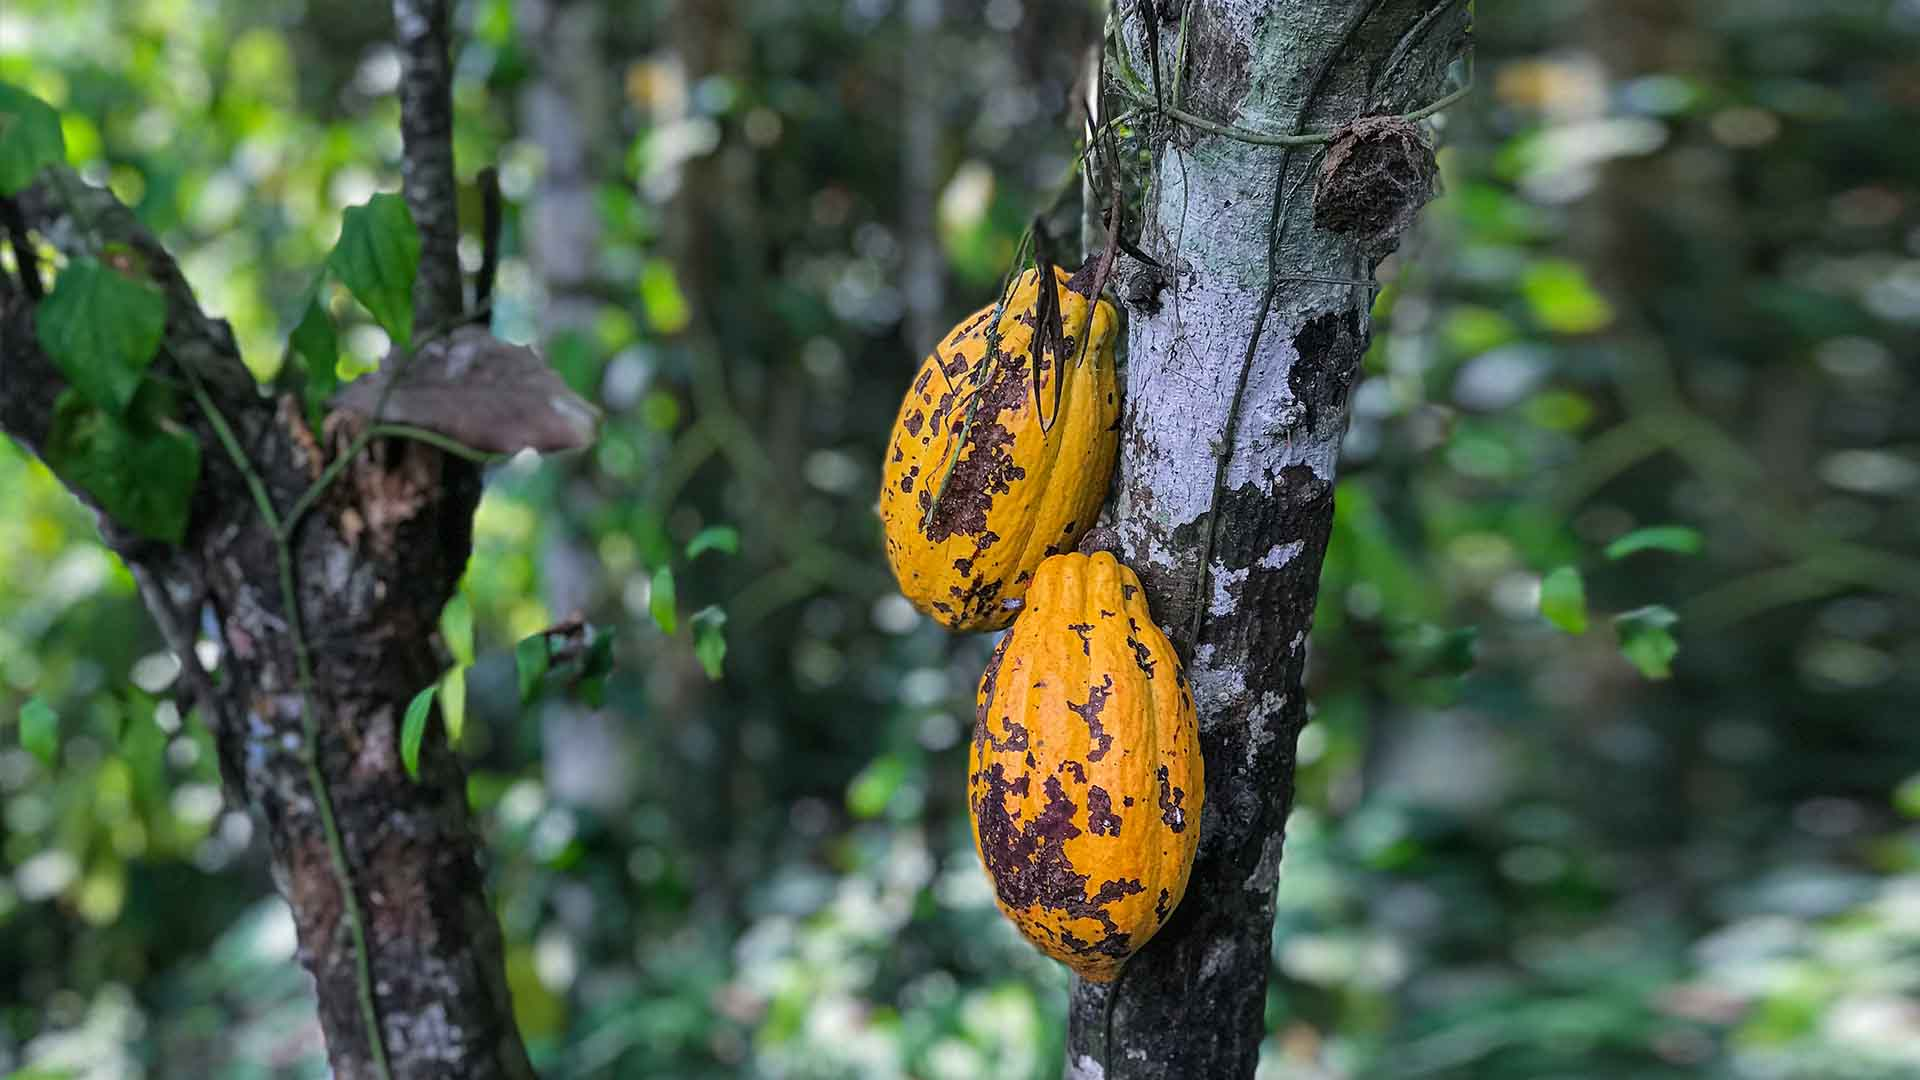 Cacao pods hanging from a tree in the jungle